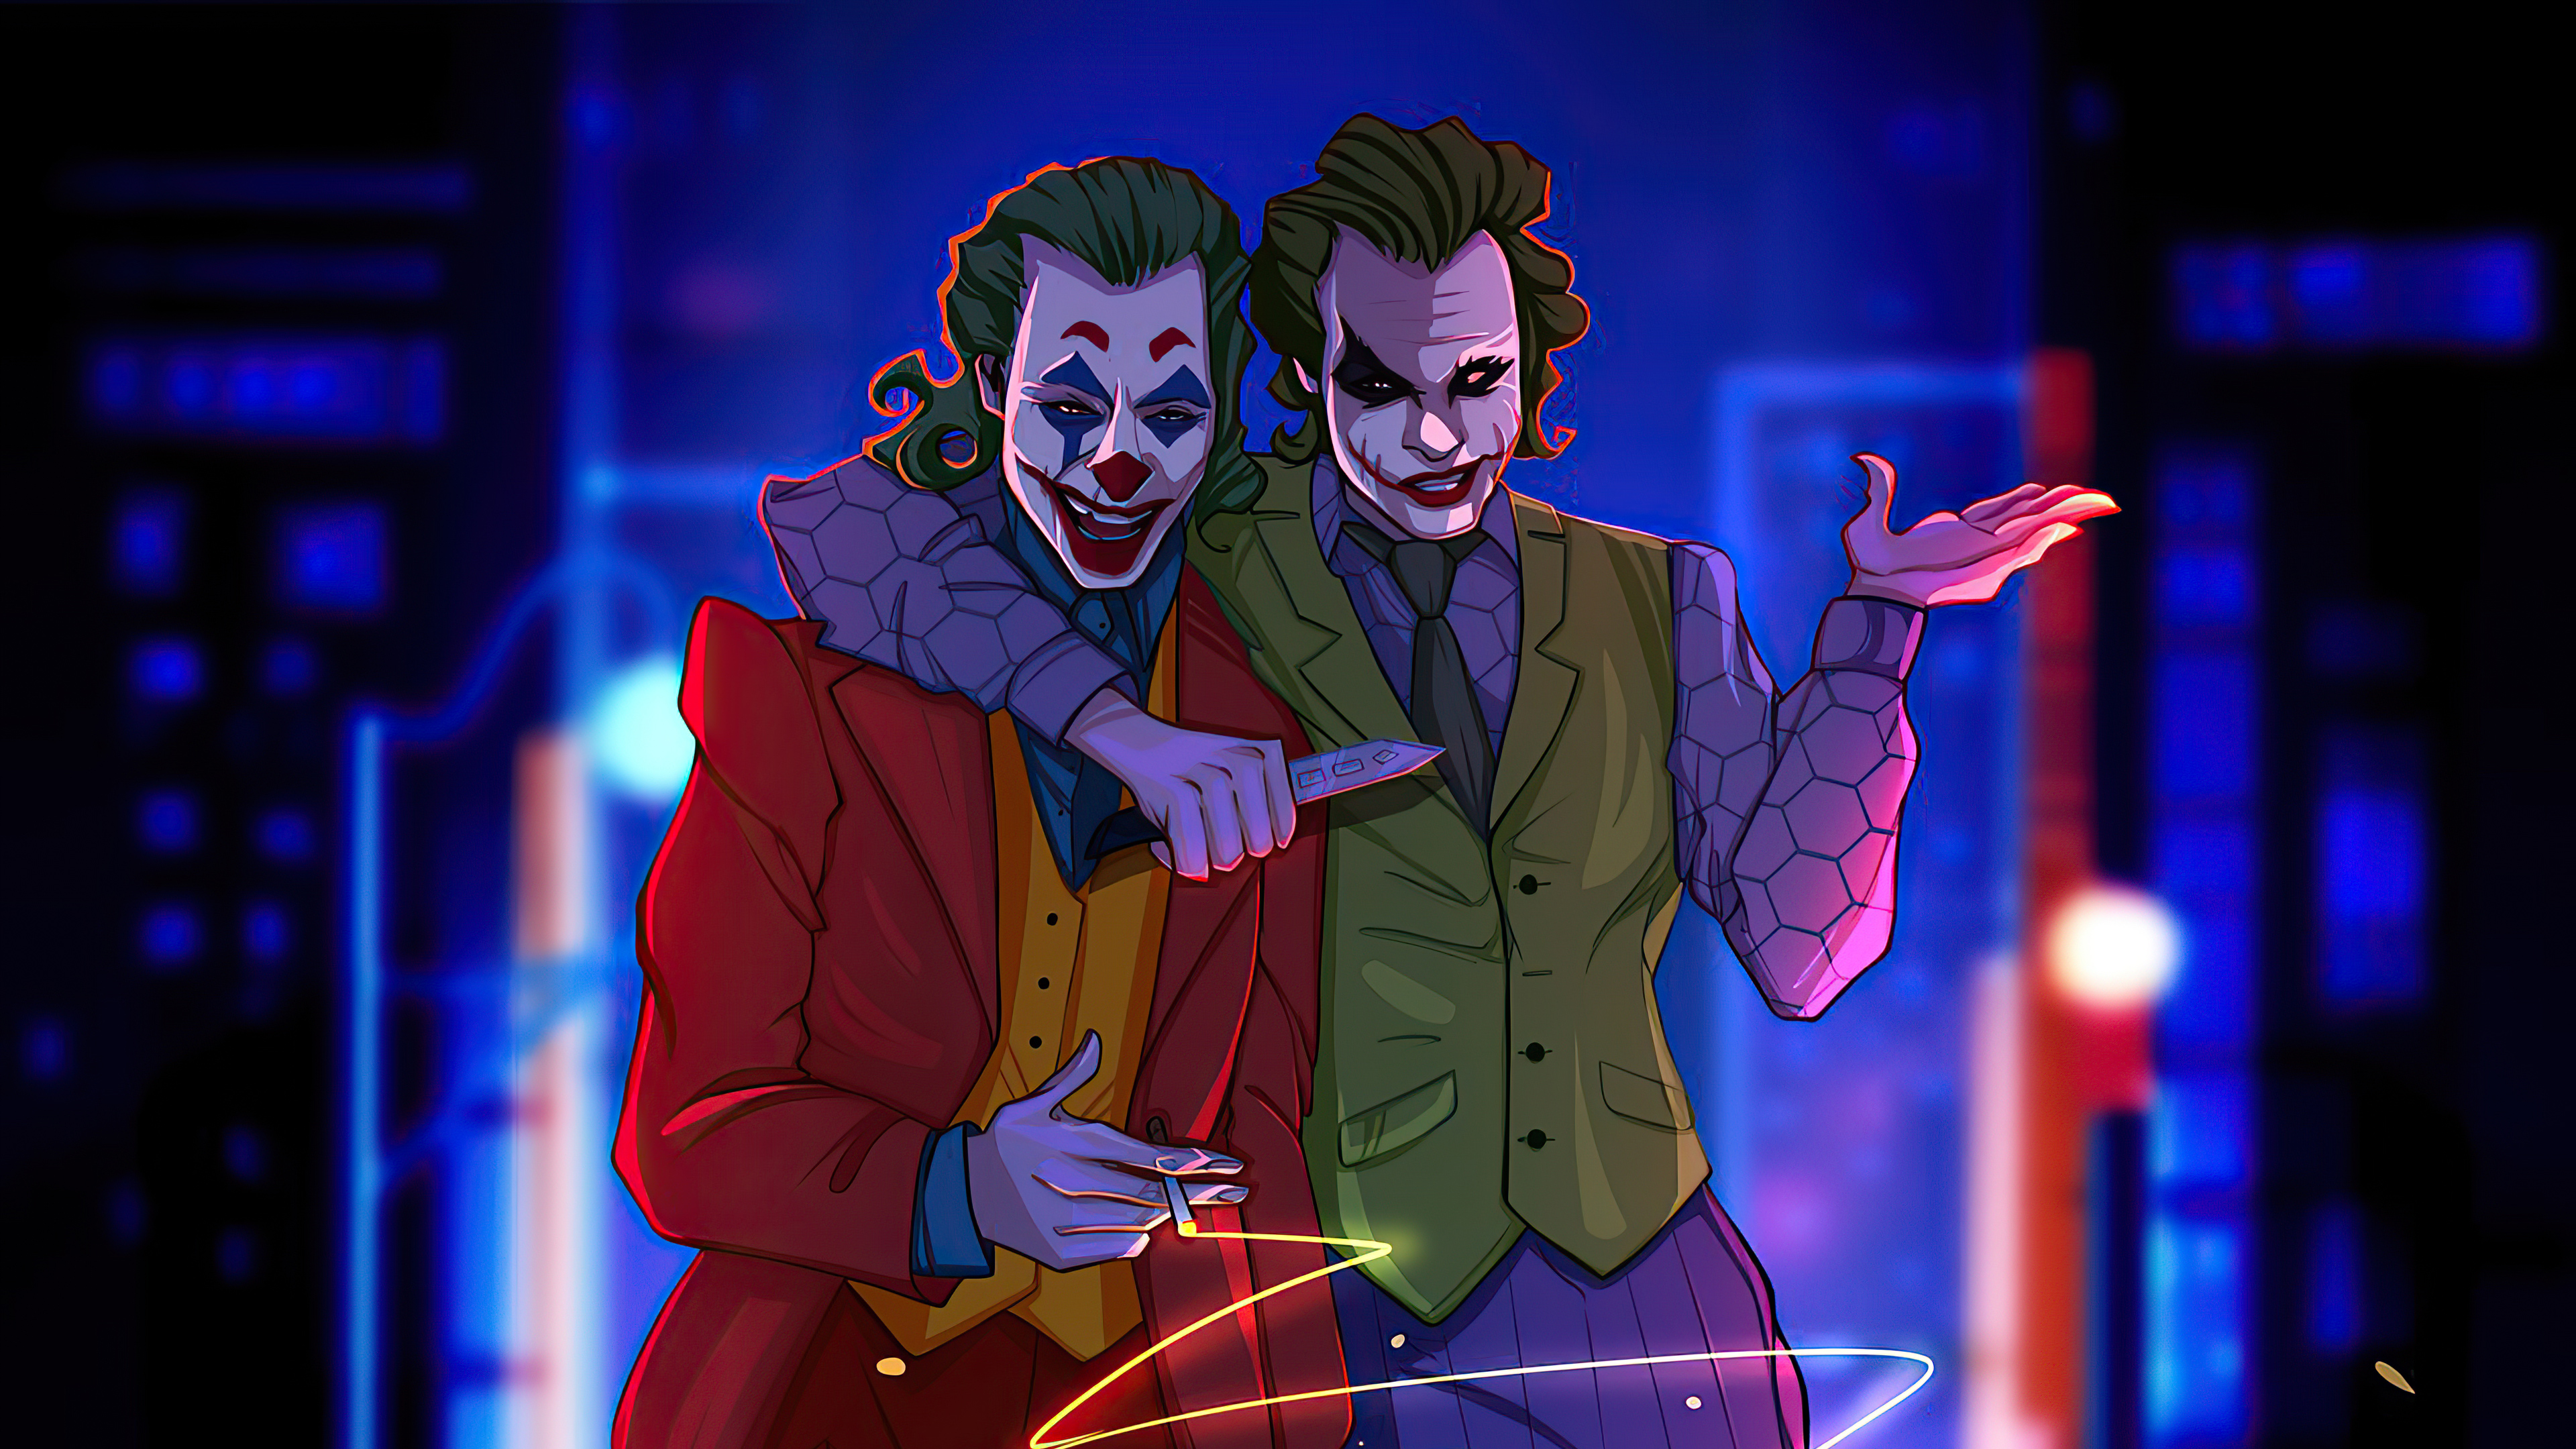 Joker Best Friends 4k Hd Superheroes 4k Wallpapers Images Backgrounds Photos And Pictures